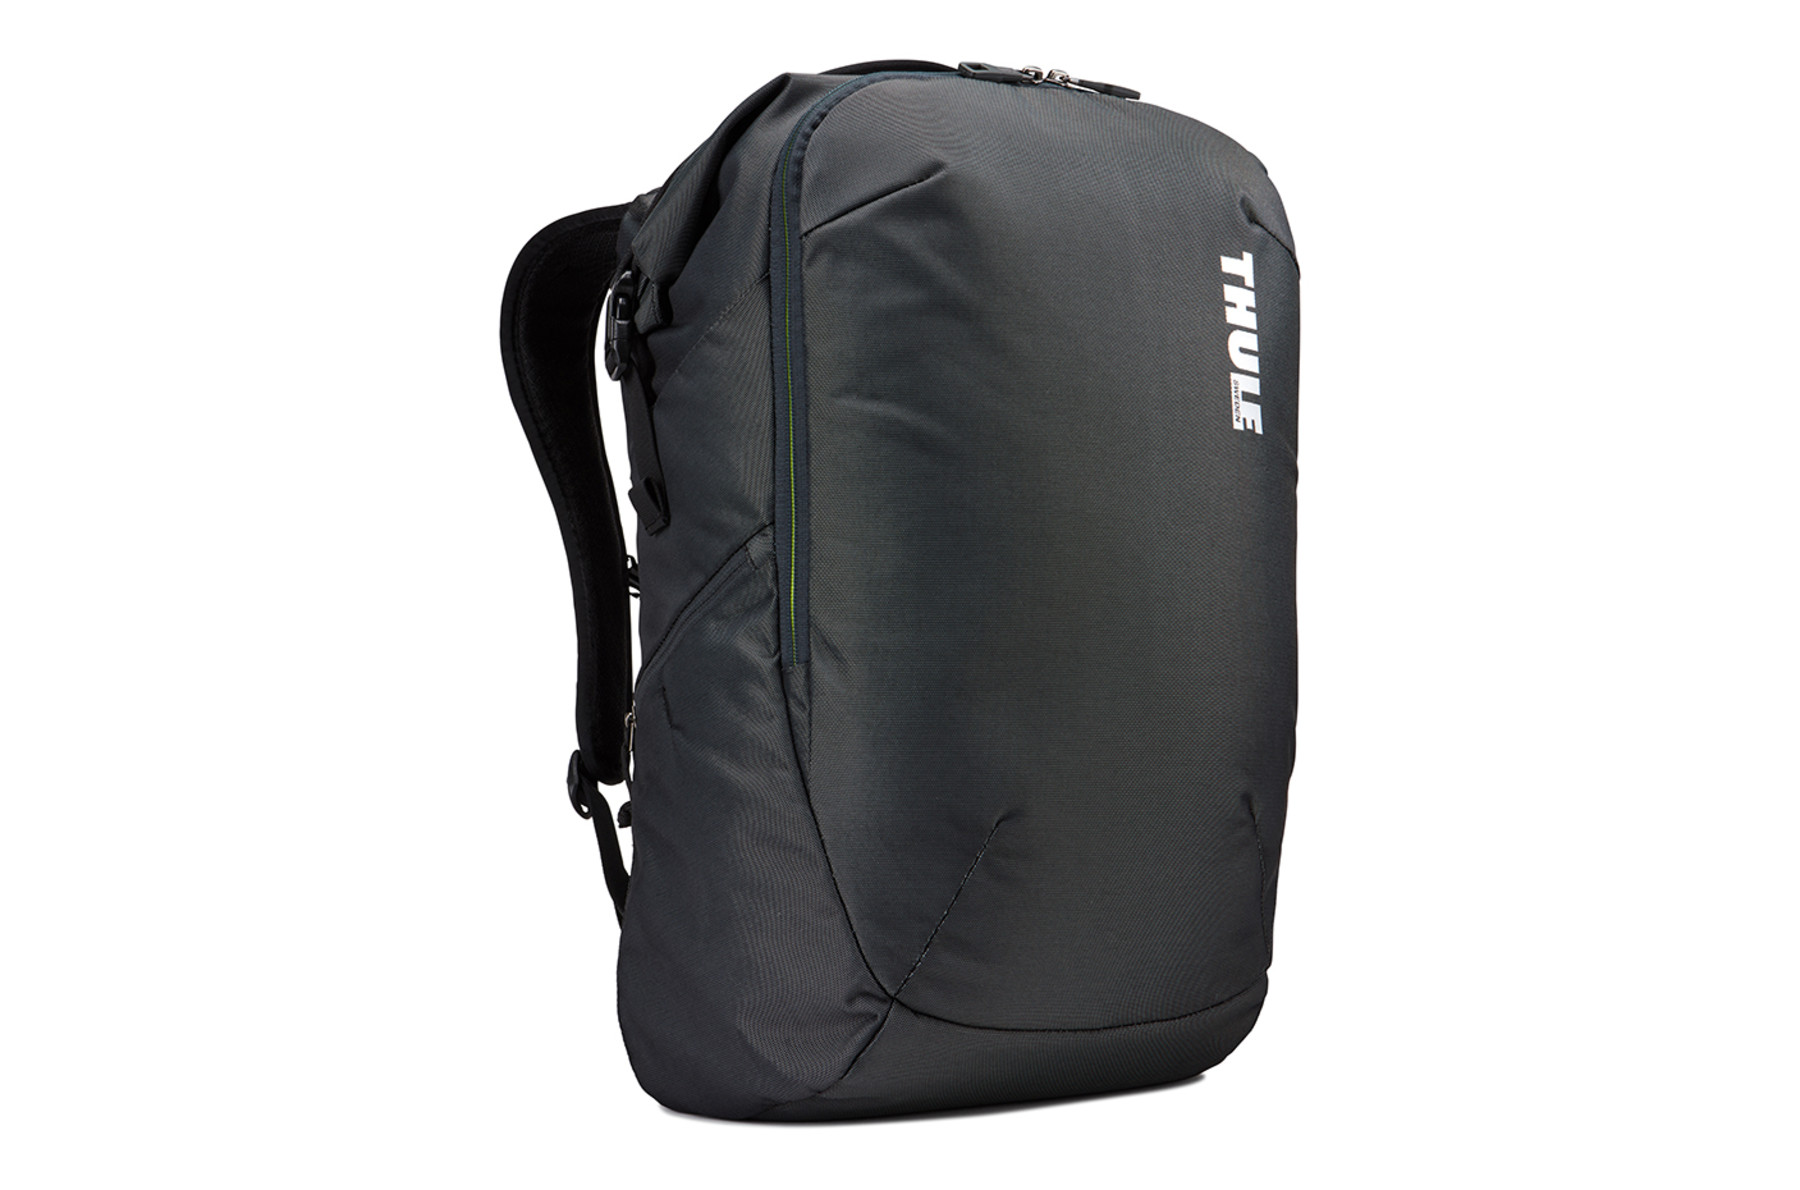 Thule_Subterra_Backpack_34L